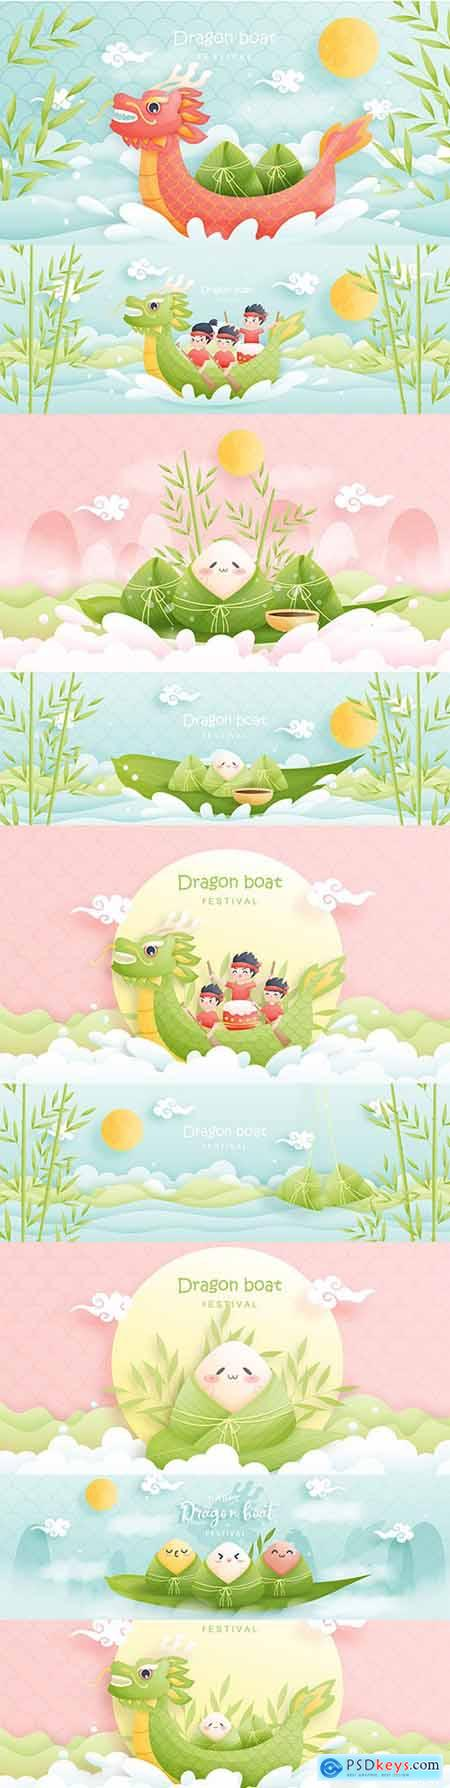 Chinese dragon boat festival with rice claws, cute illustration